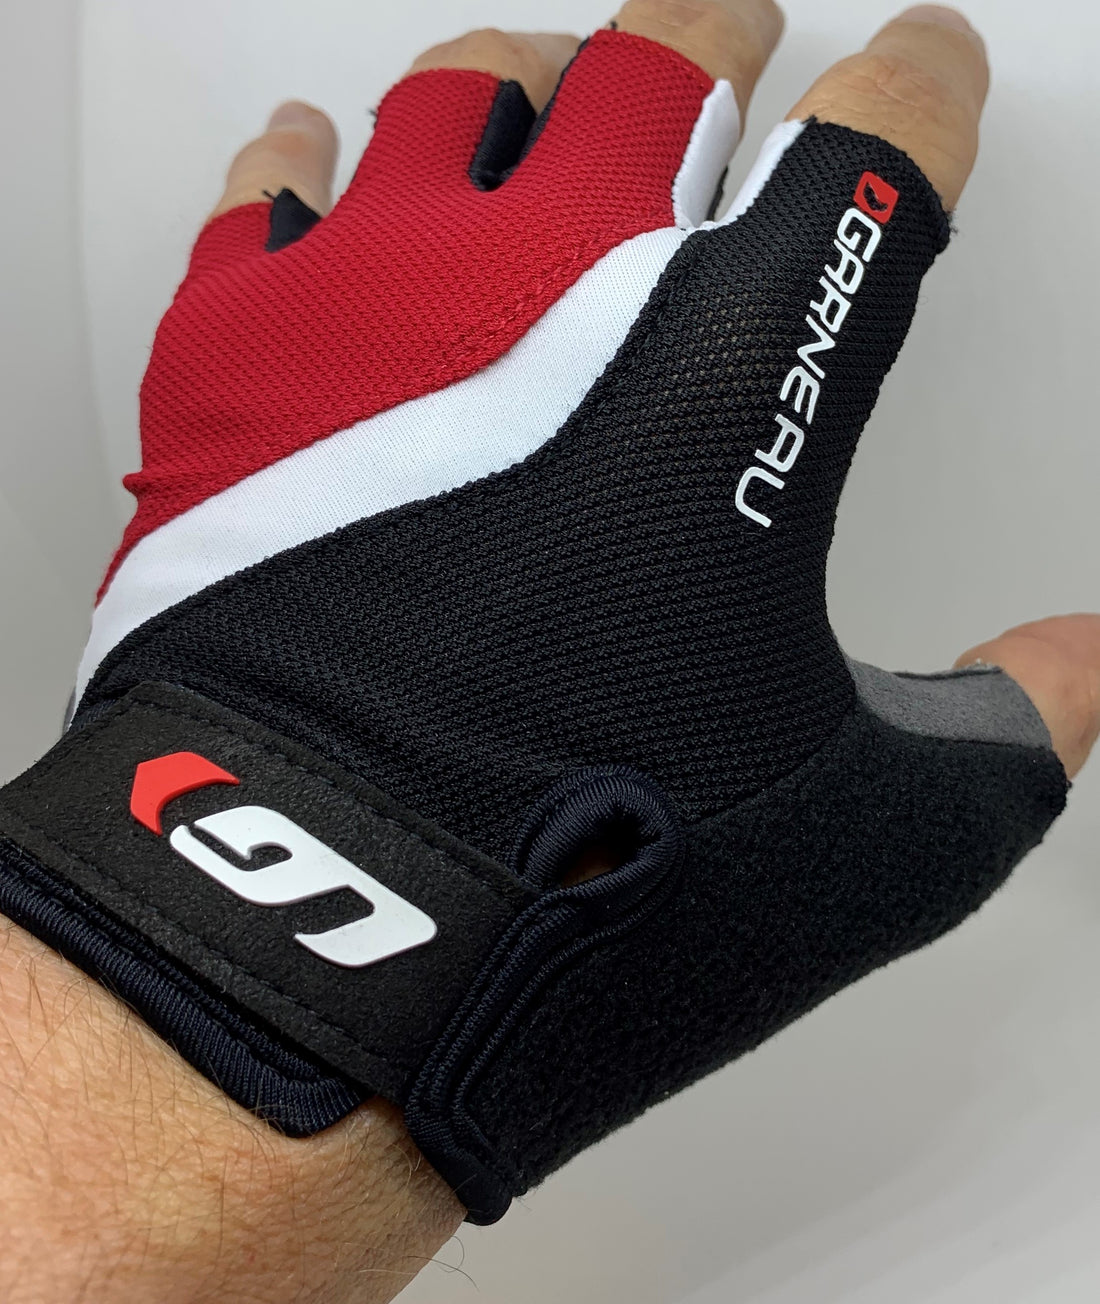 BIOGEL RX-V Cycling Gloves Men's Red Black Small